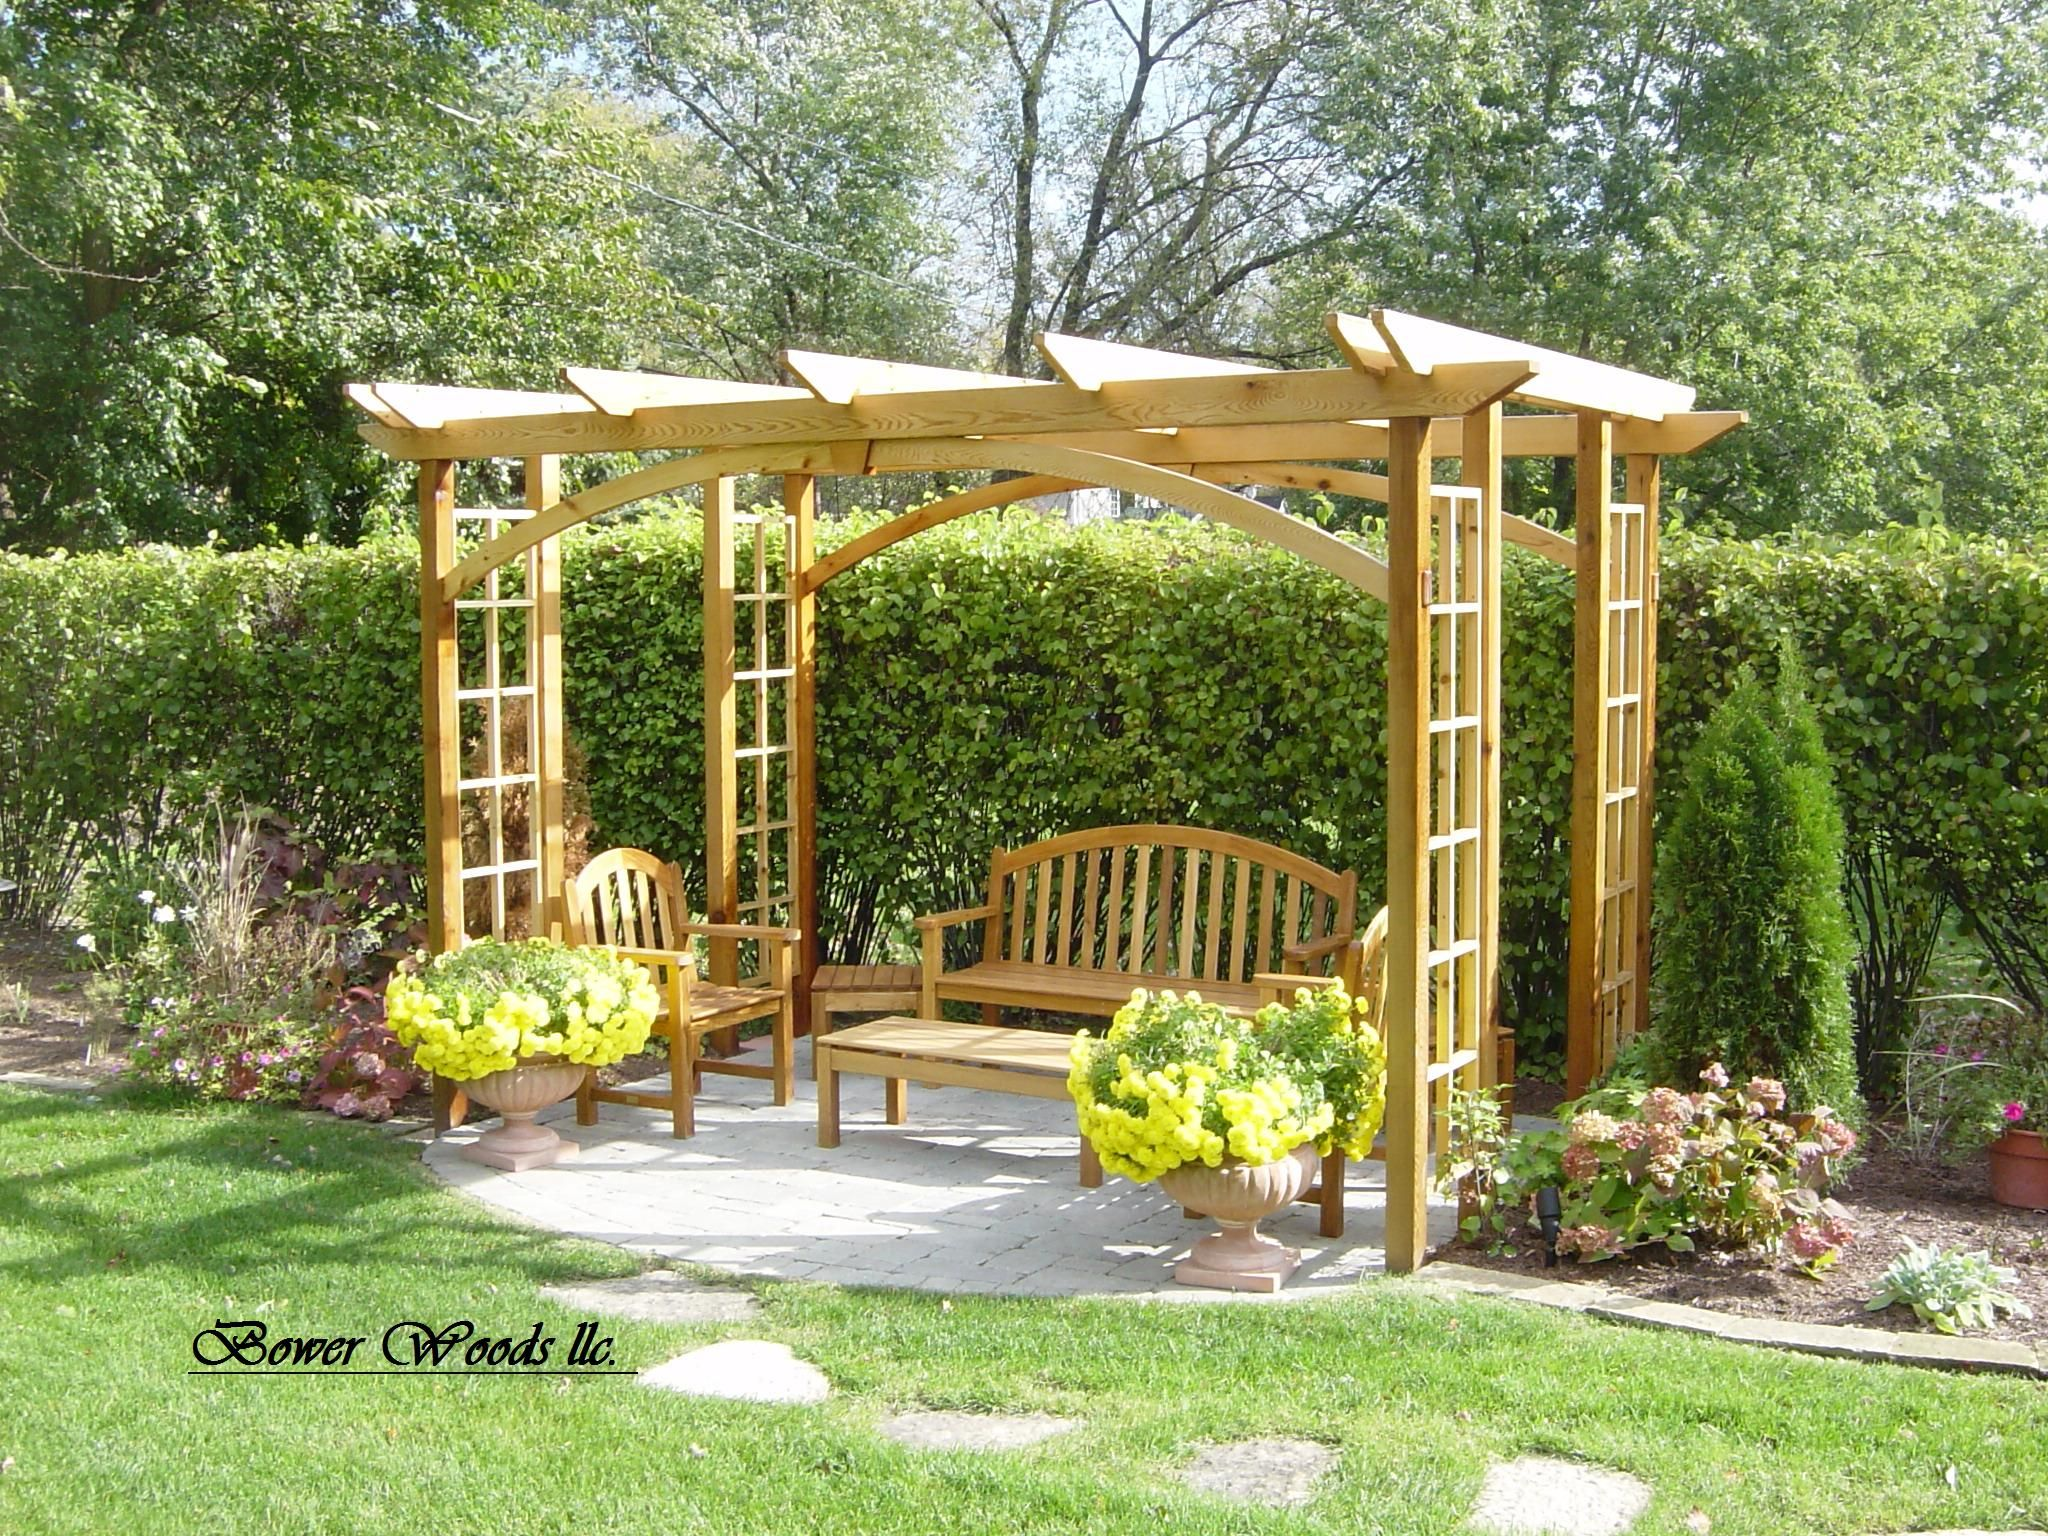 Construire une pergola pergolas garden structures and for Pergola designs